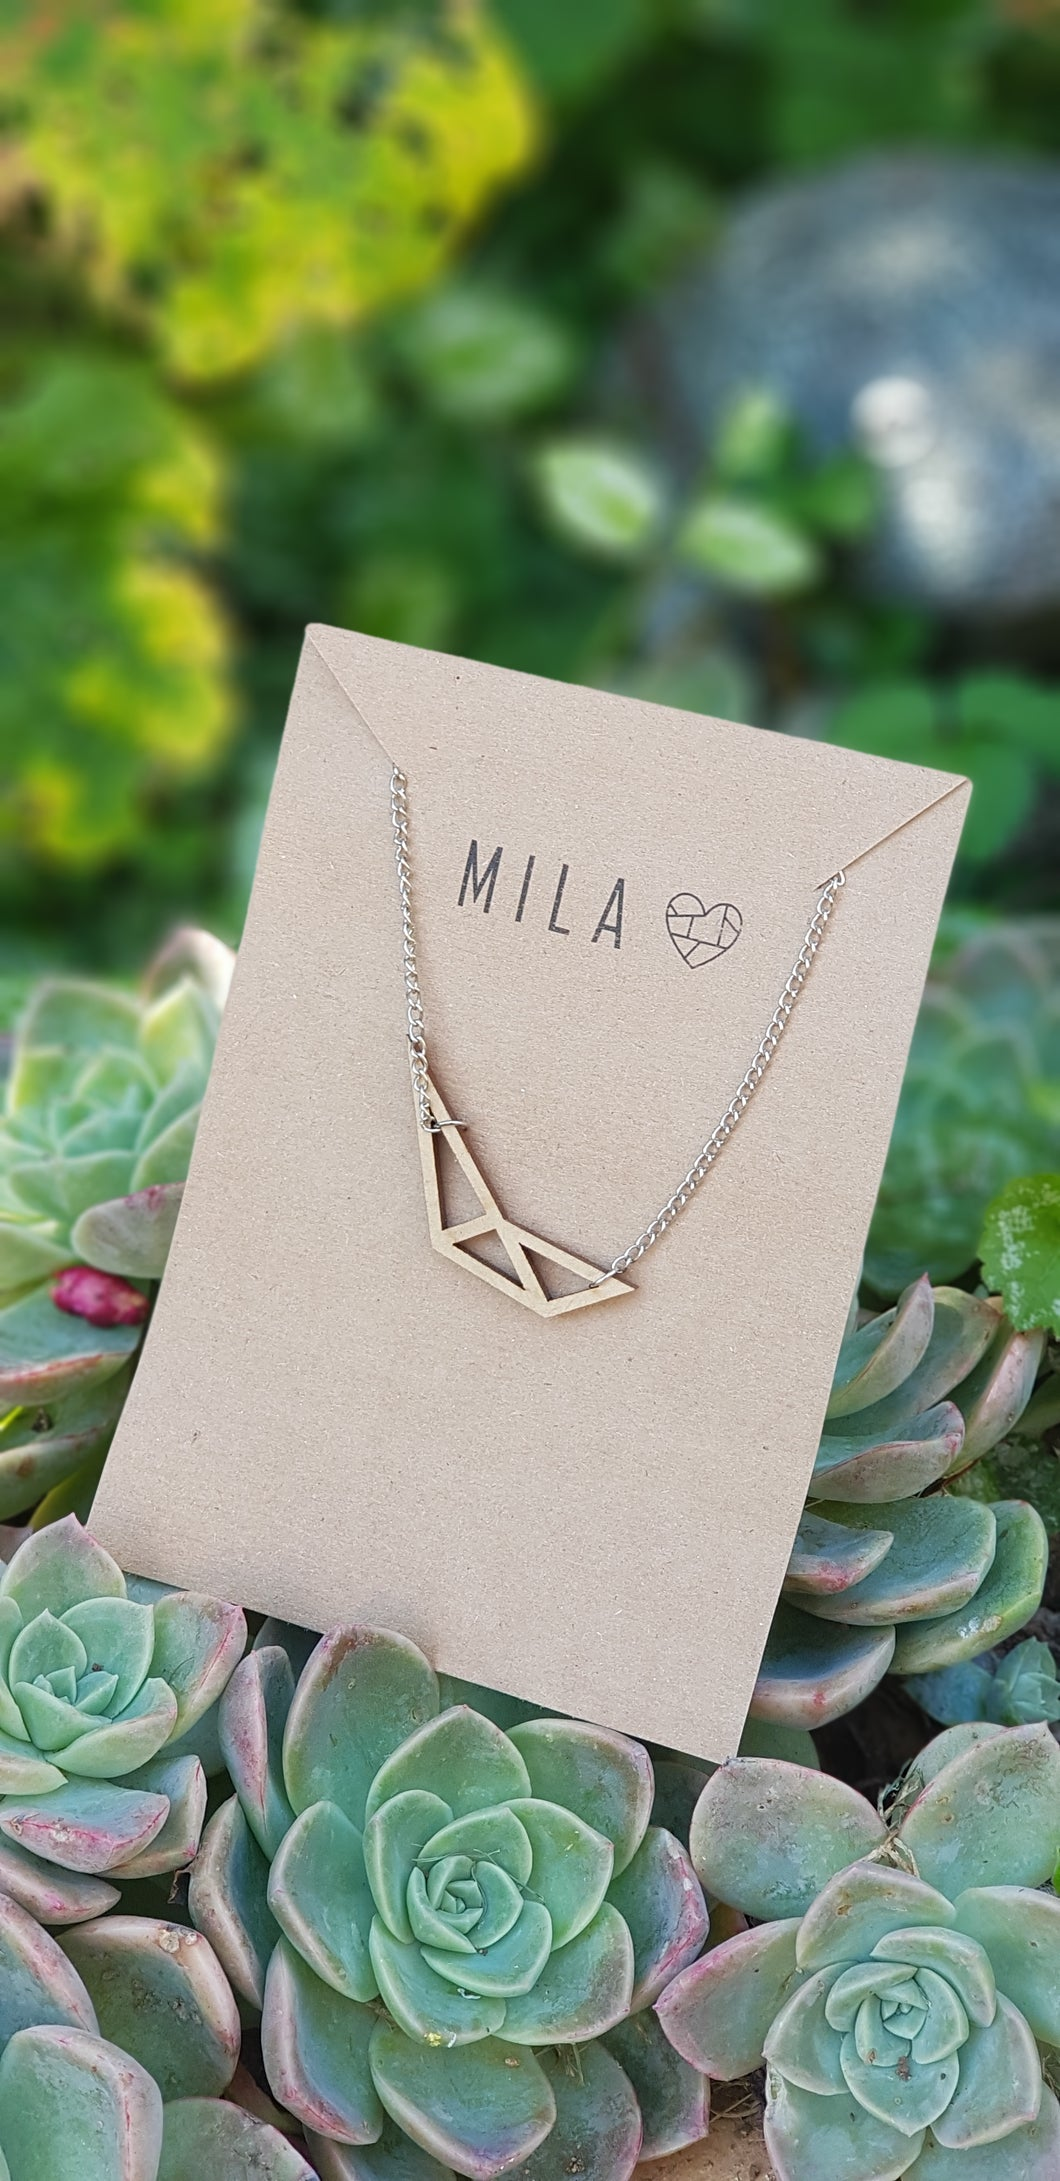 Mila Wooden Abstract A  Necklace